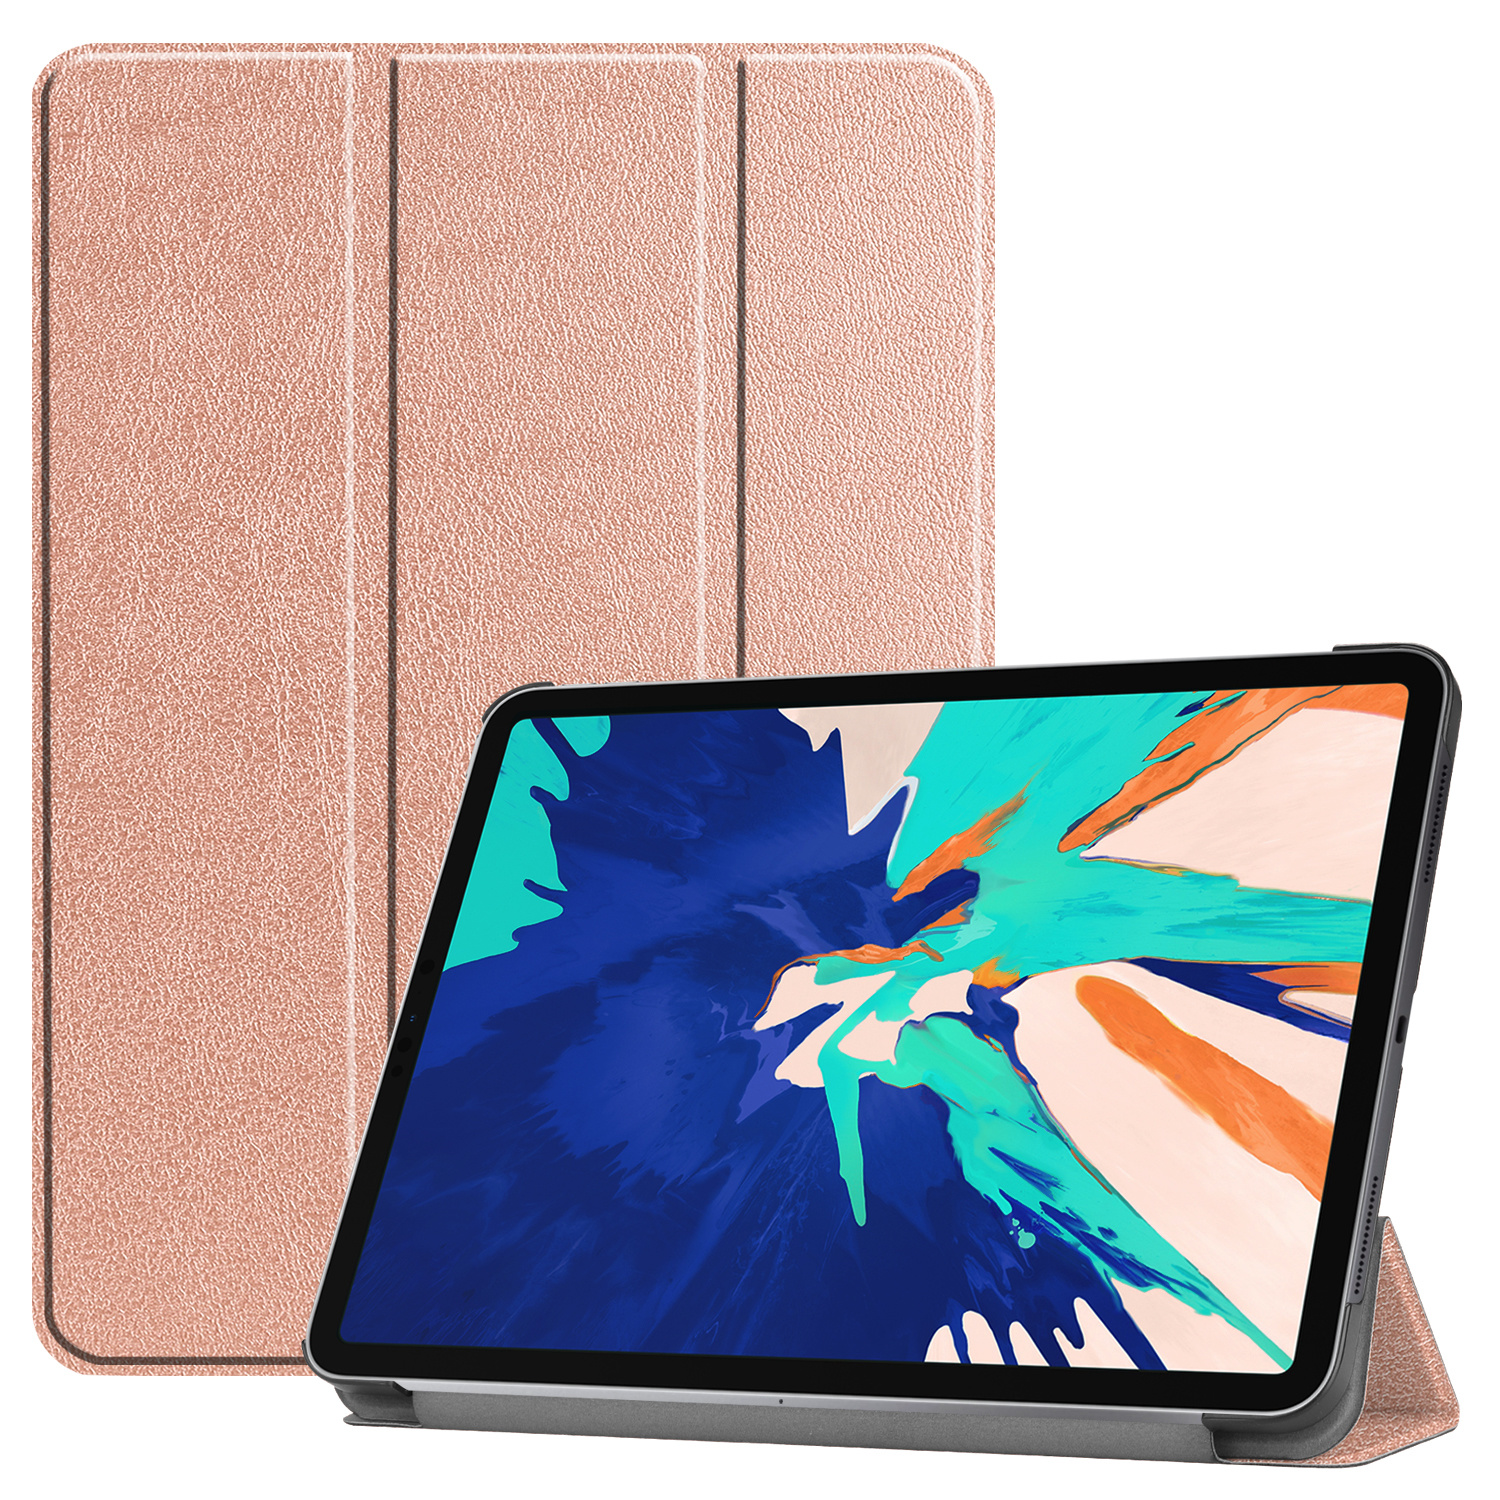 3-Vouw sleepcover hoes - iPad Pro 12.9 inch (2018-2019) - Rose Goud